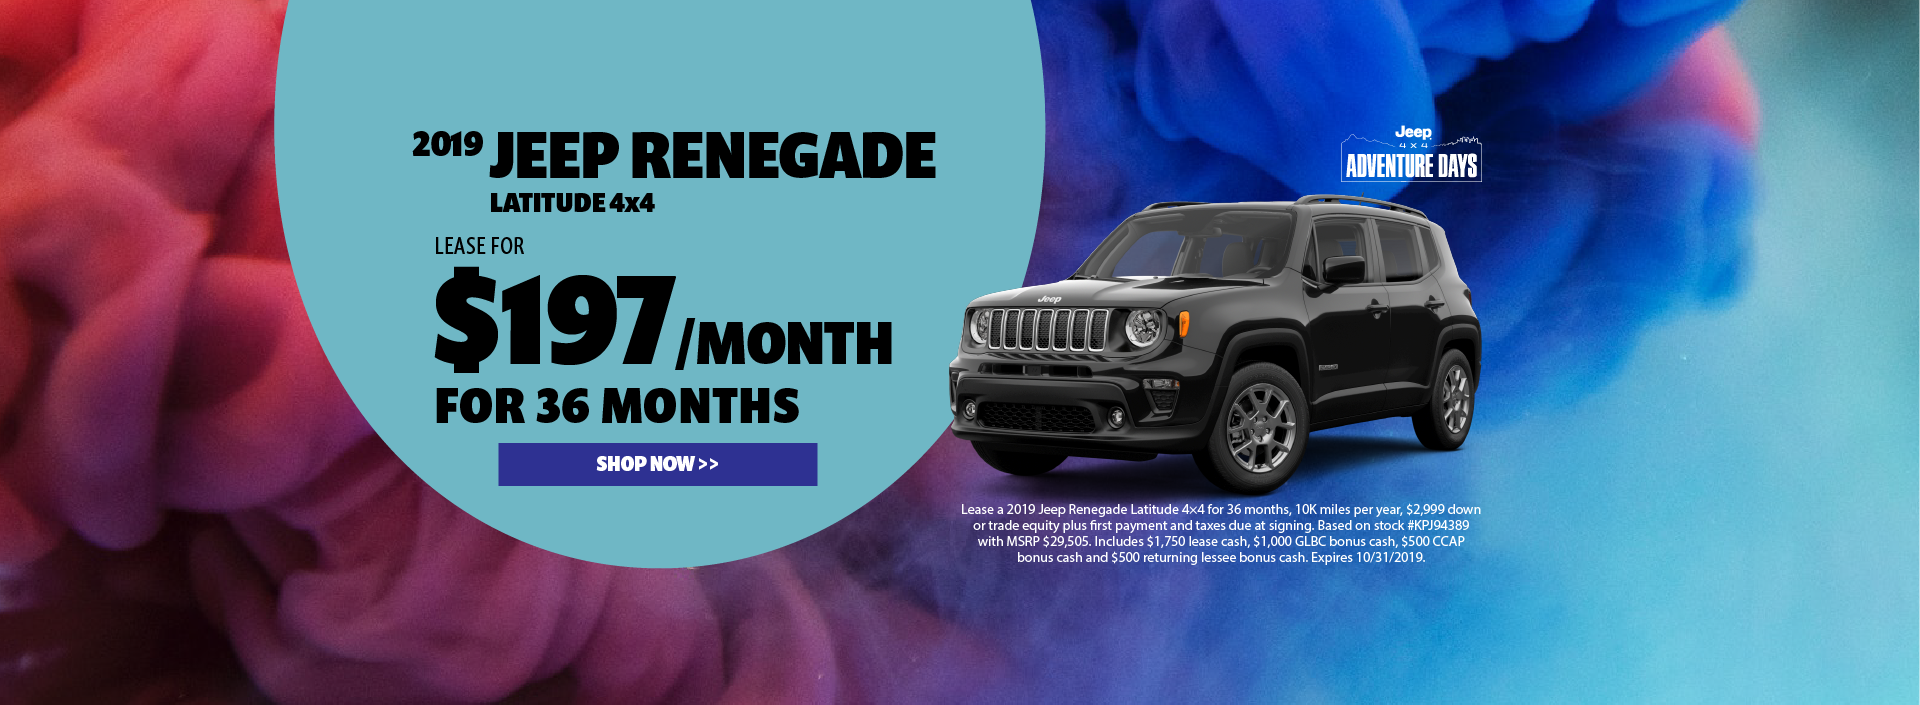 2019 Jeep Renegade Lease Offer